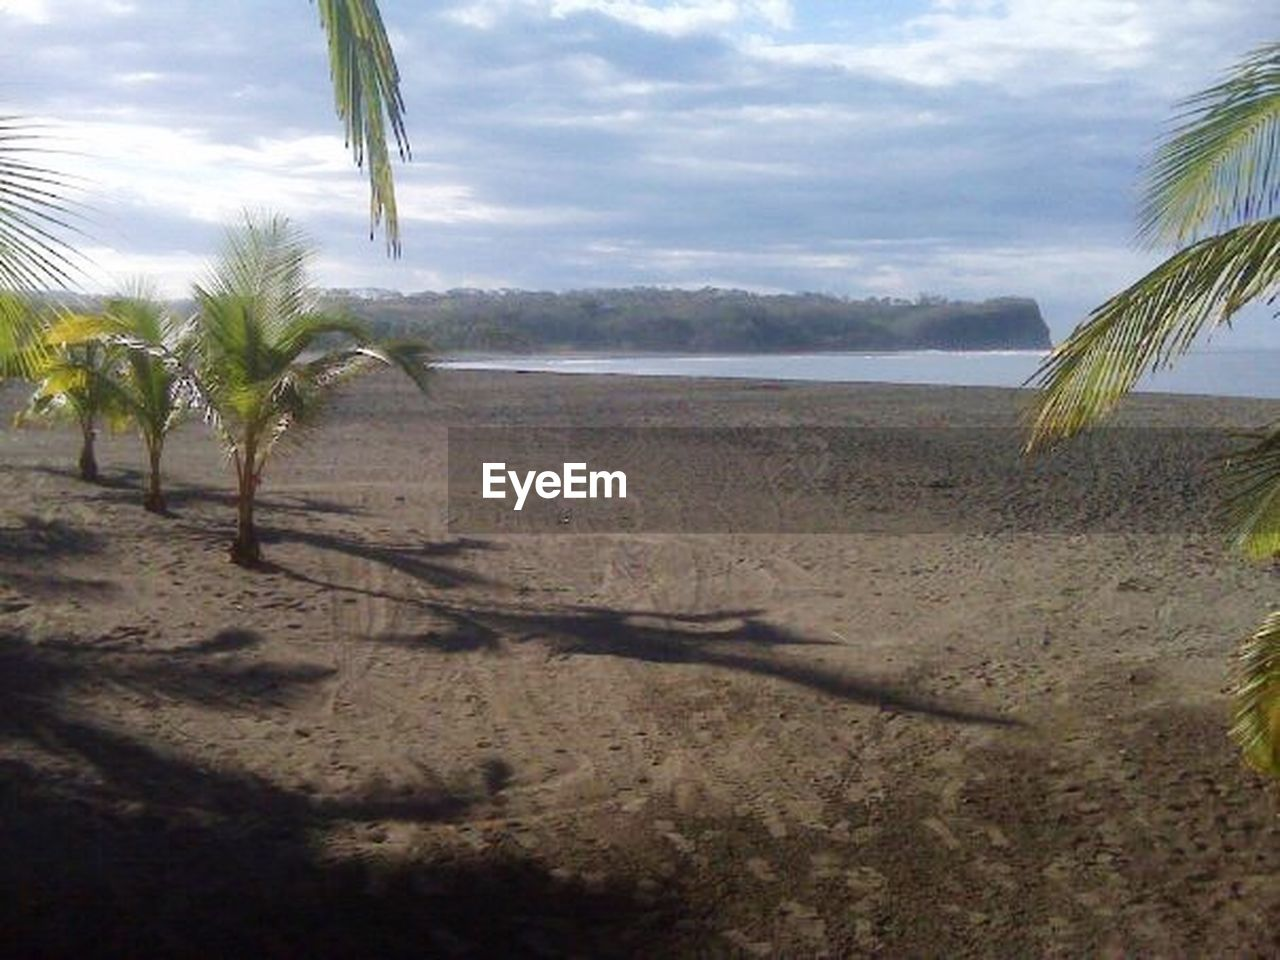 sand, palm tree, nature, growth, sky, tree, beach, landscape, scenics, no people, sea, day, outdoors, beauty in nature